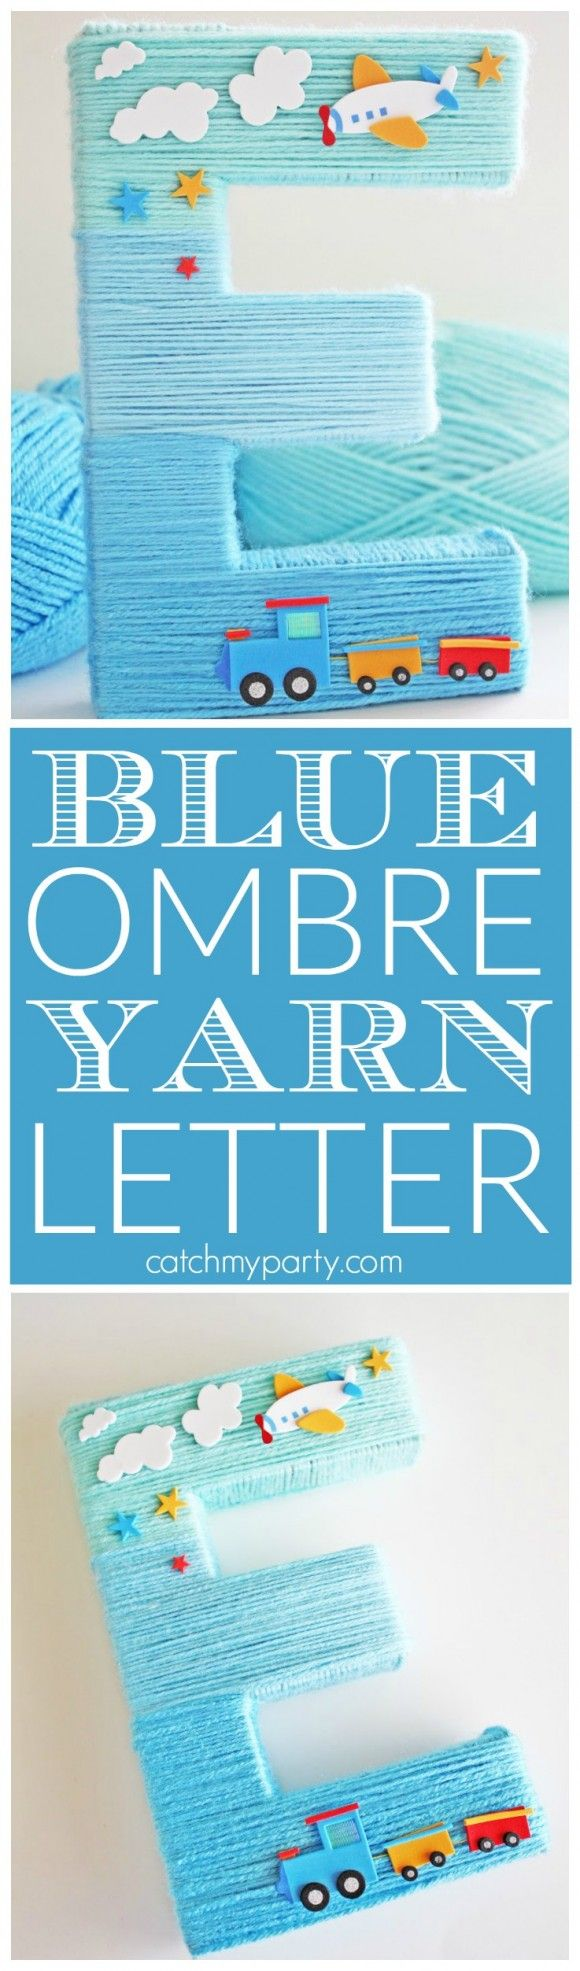 baby shower letters blue yarn wrapped ombre monogram letter ombre boy 20541 | b12951ac0a21e2b752584ac3ed8139af